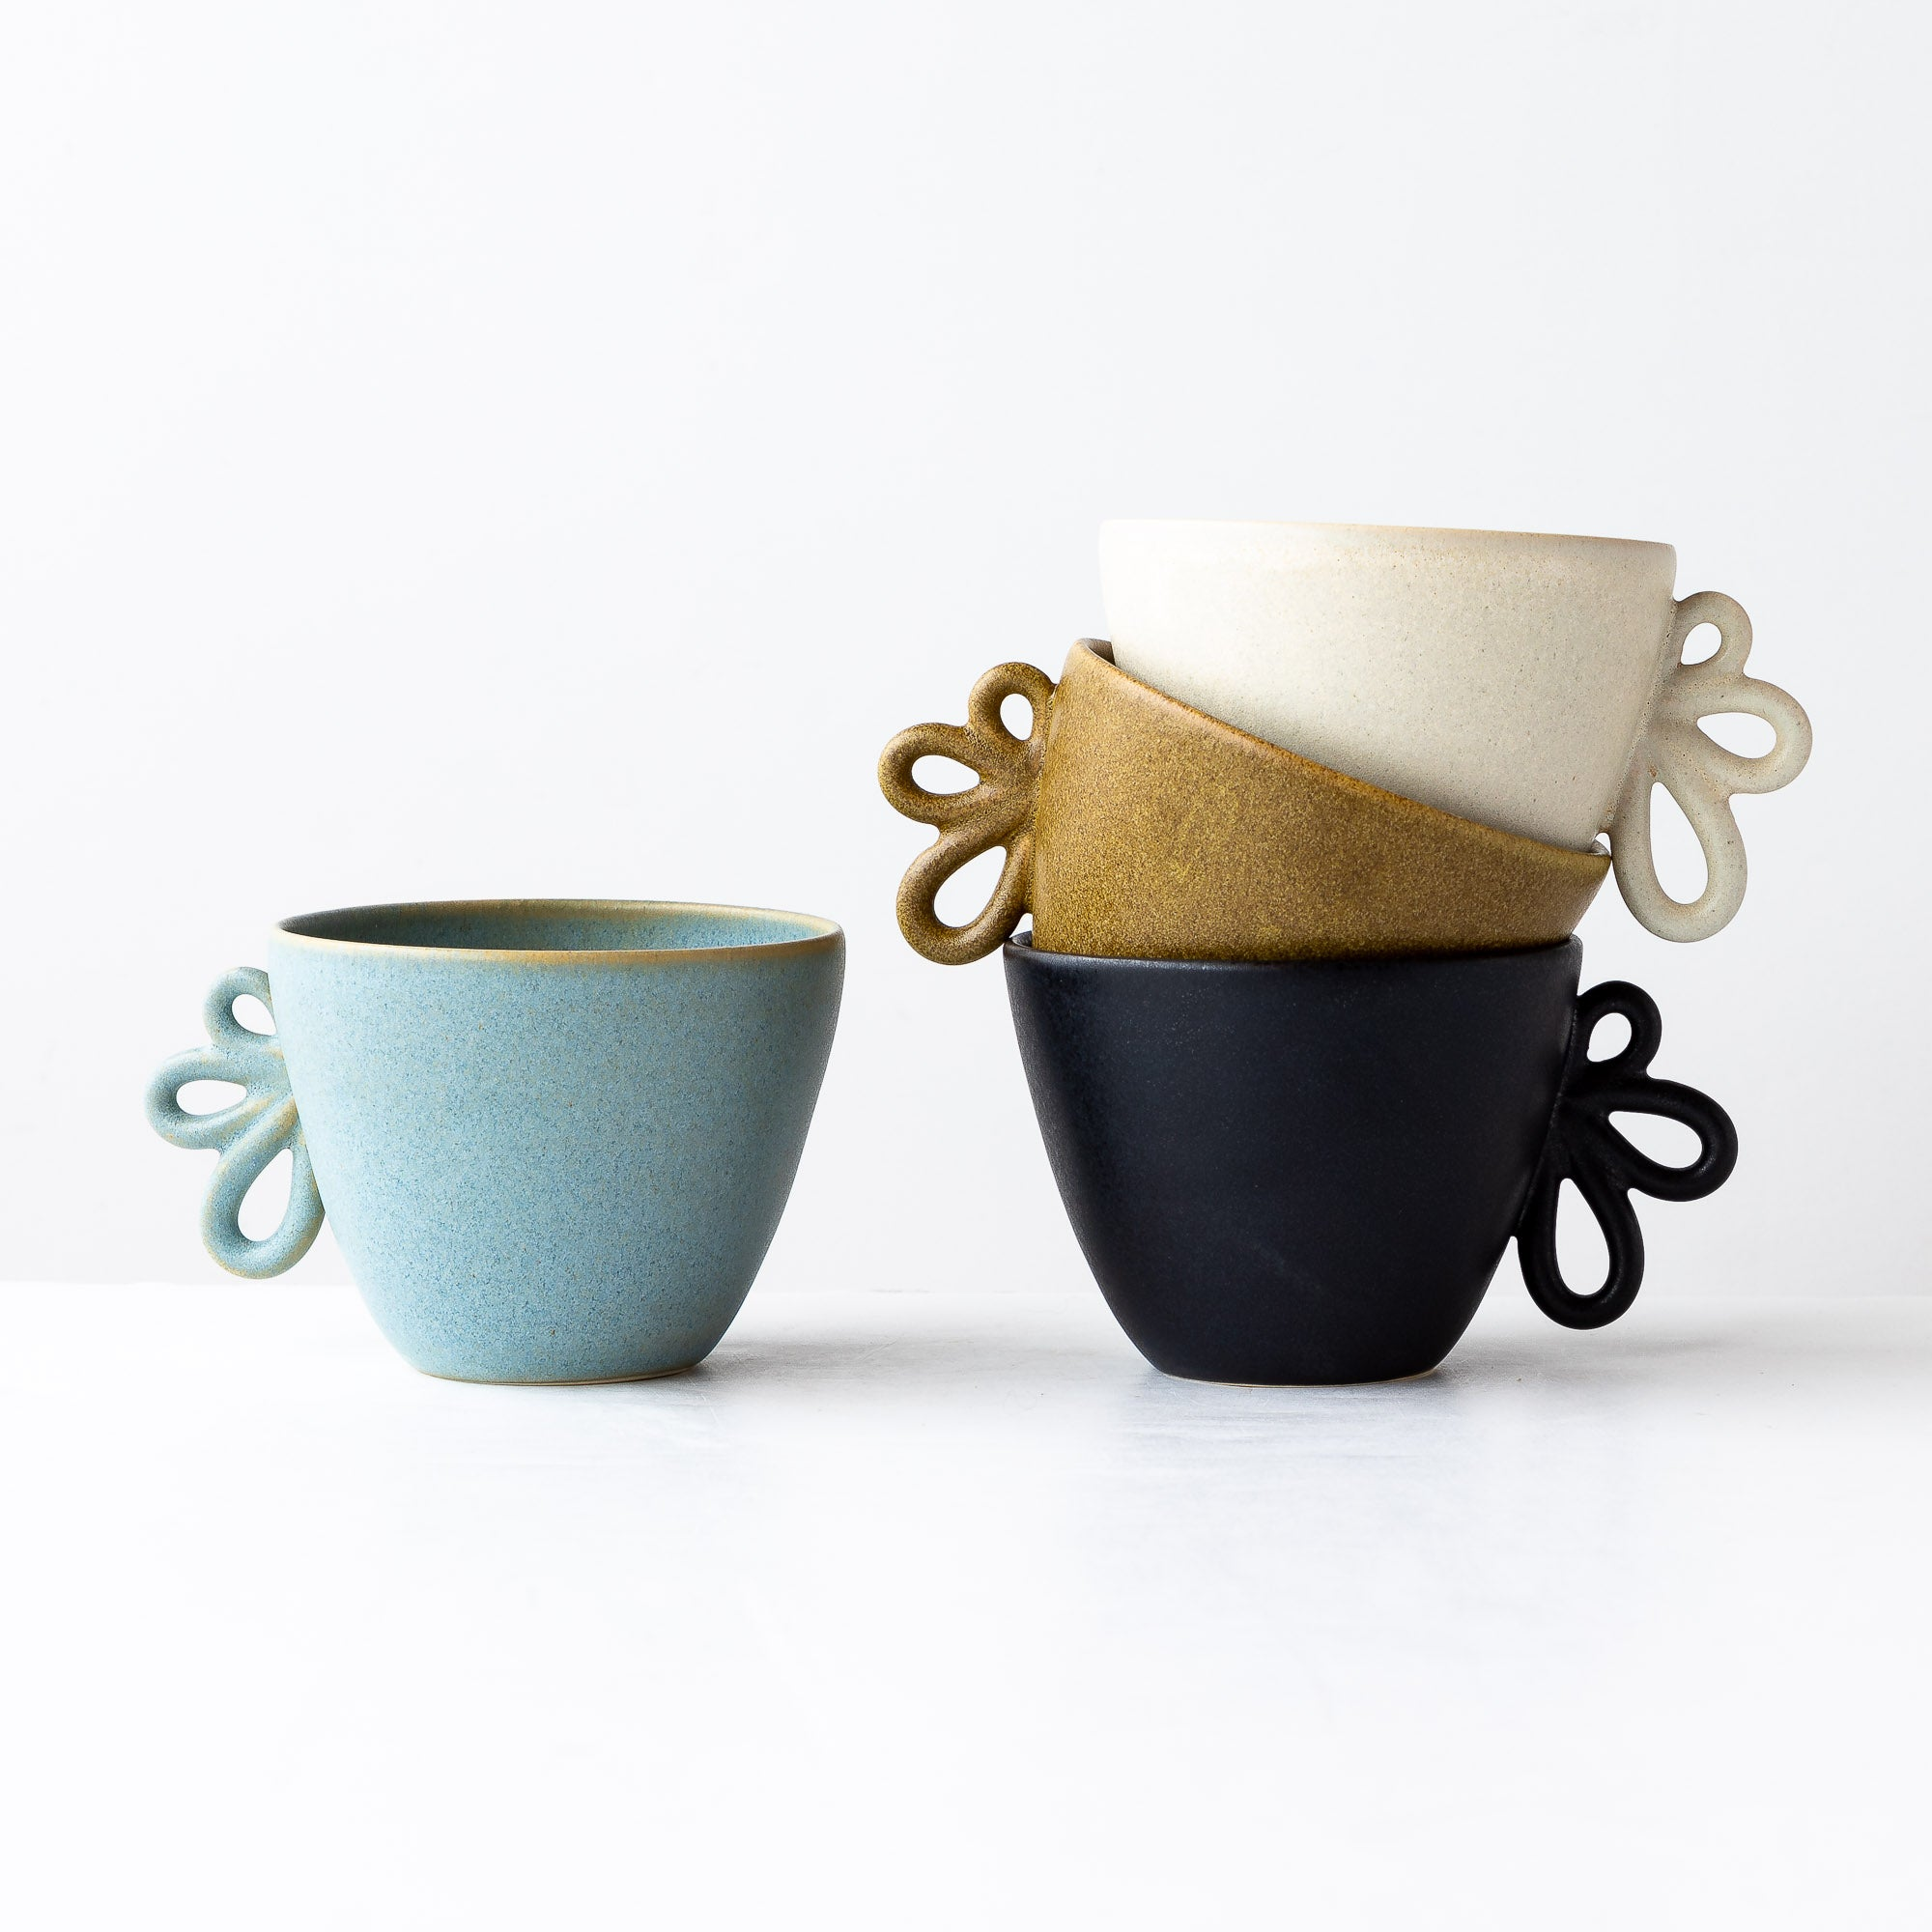 Four Small Round Wheel Thrown Stoneware Mugs - Sold by Chic & Basta